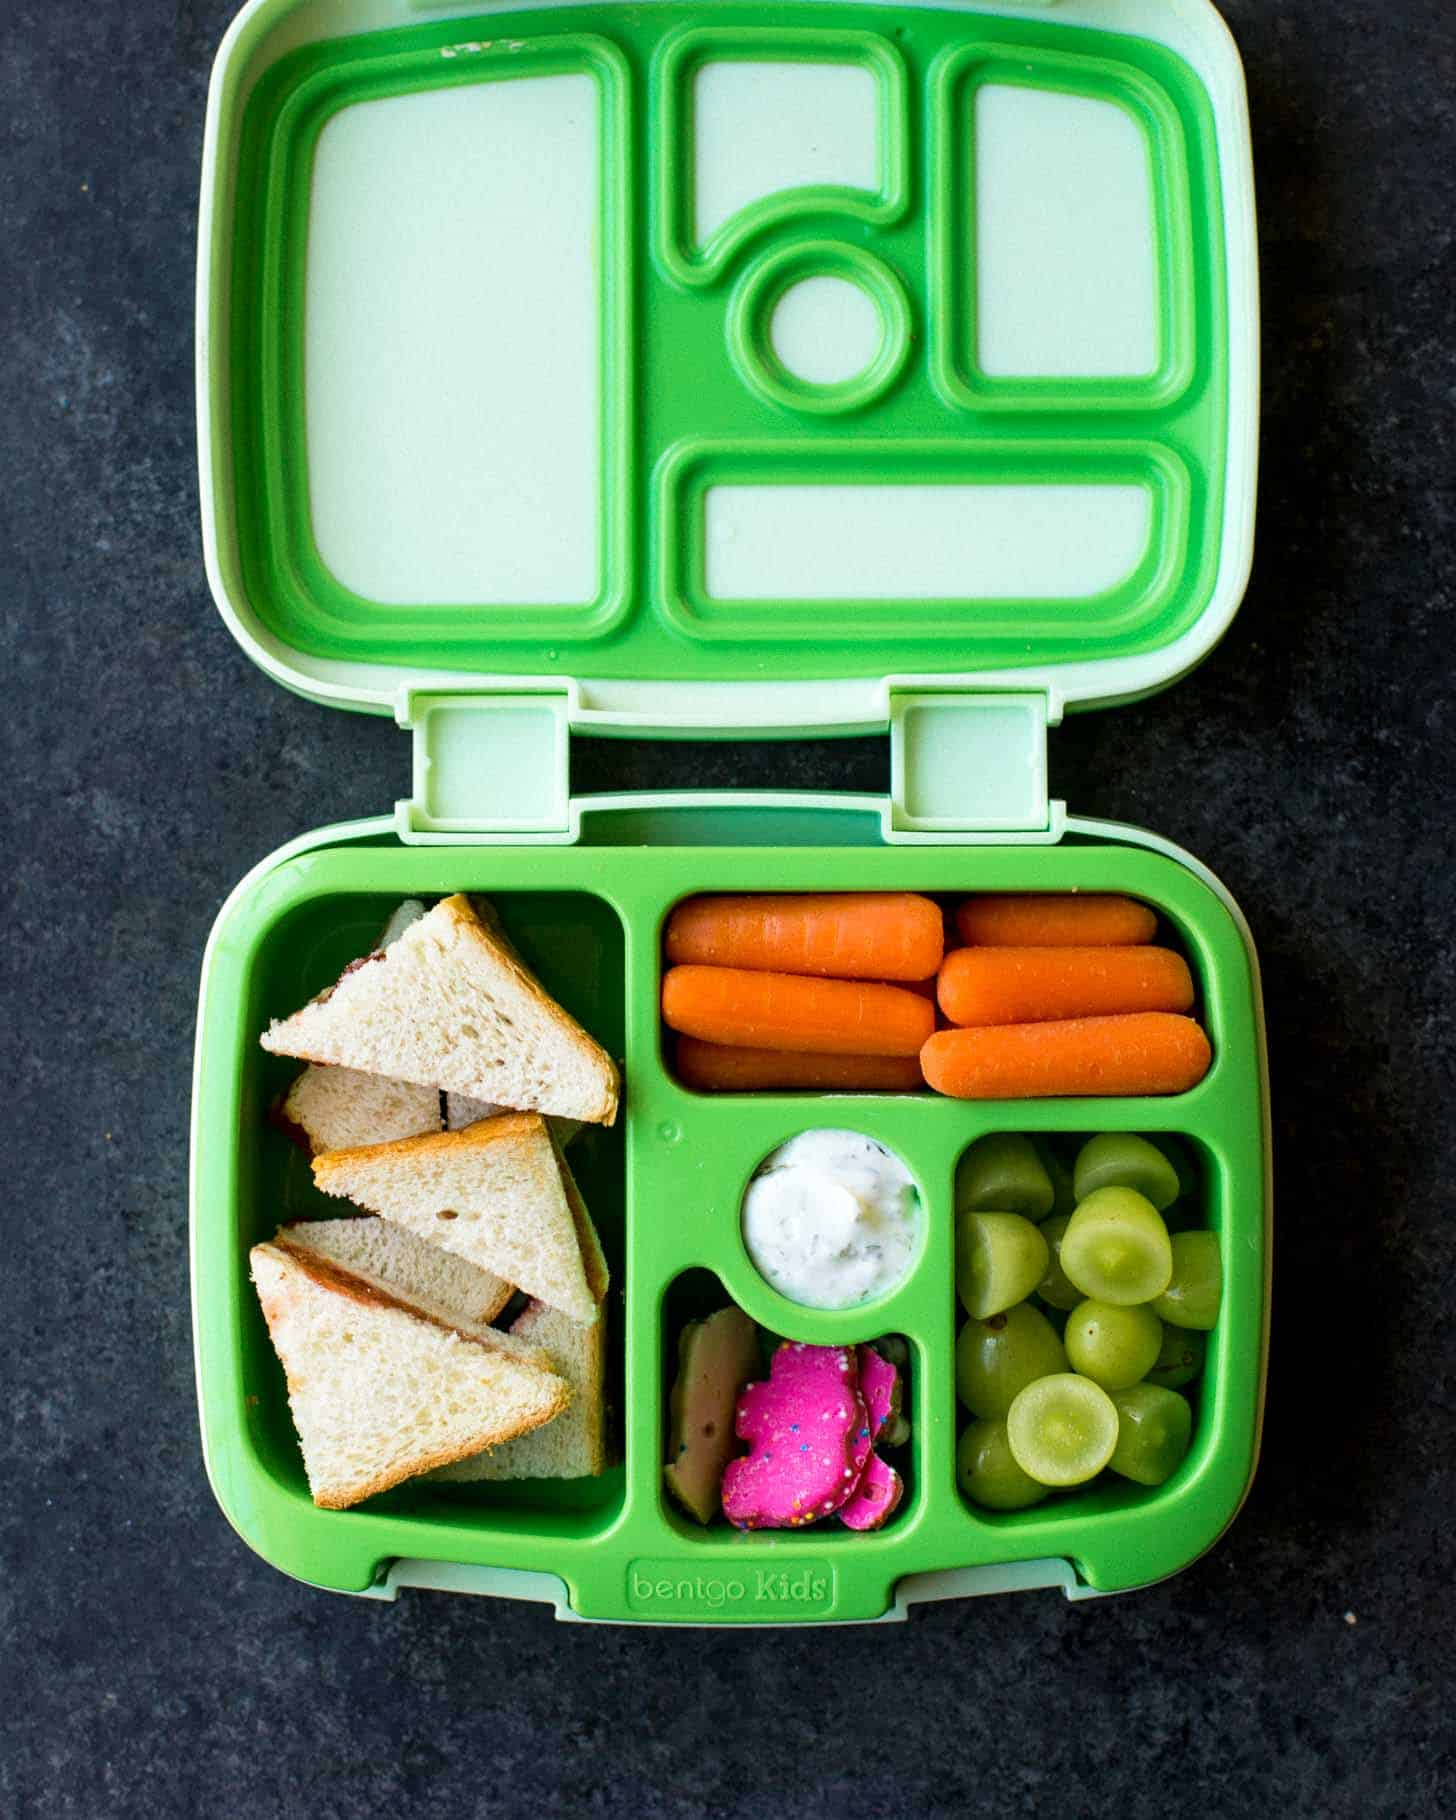 Bentgo Kids packed with Classic Lunch